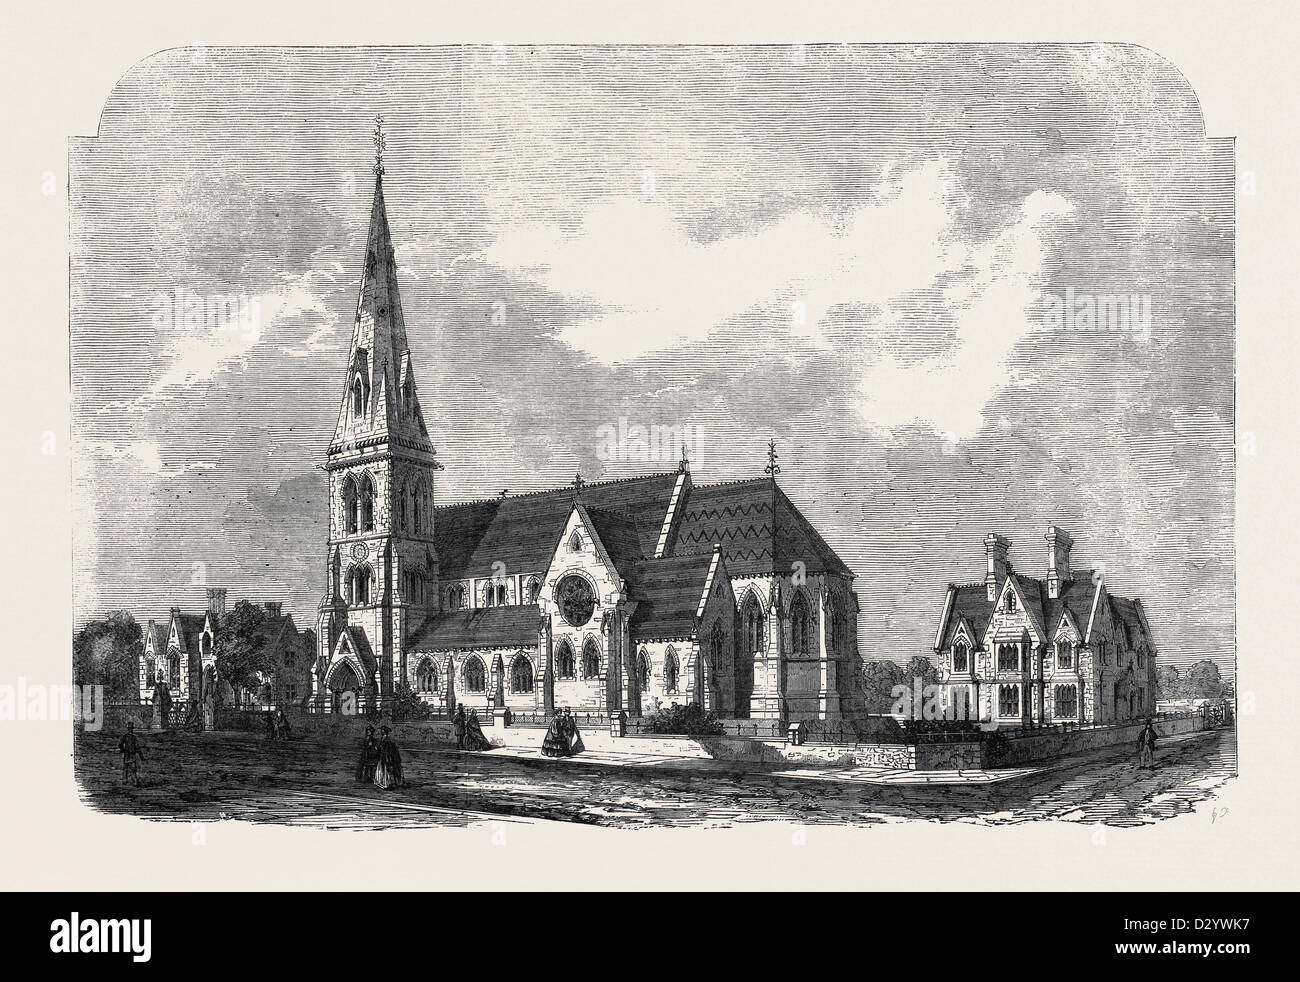 ST. ANN'S CHURCH PARSONAGE AND SCHOOLS HANGER LANE STAMFORD HILL - Stock Image